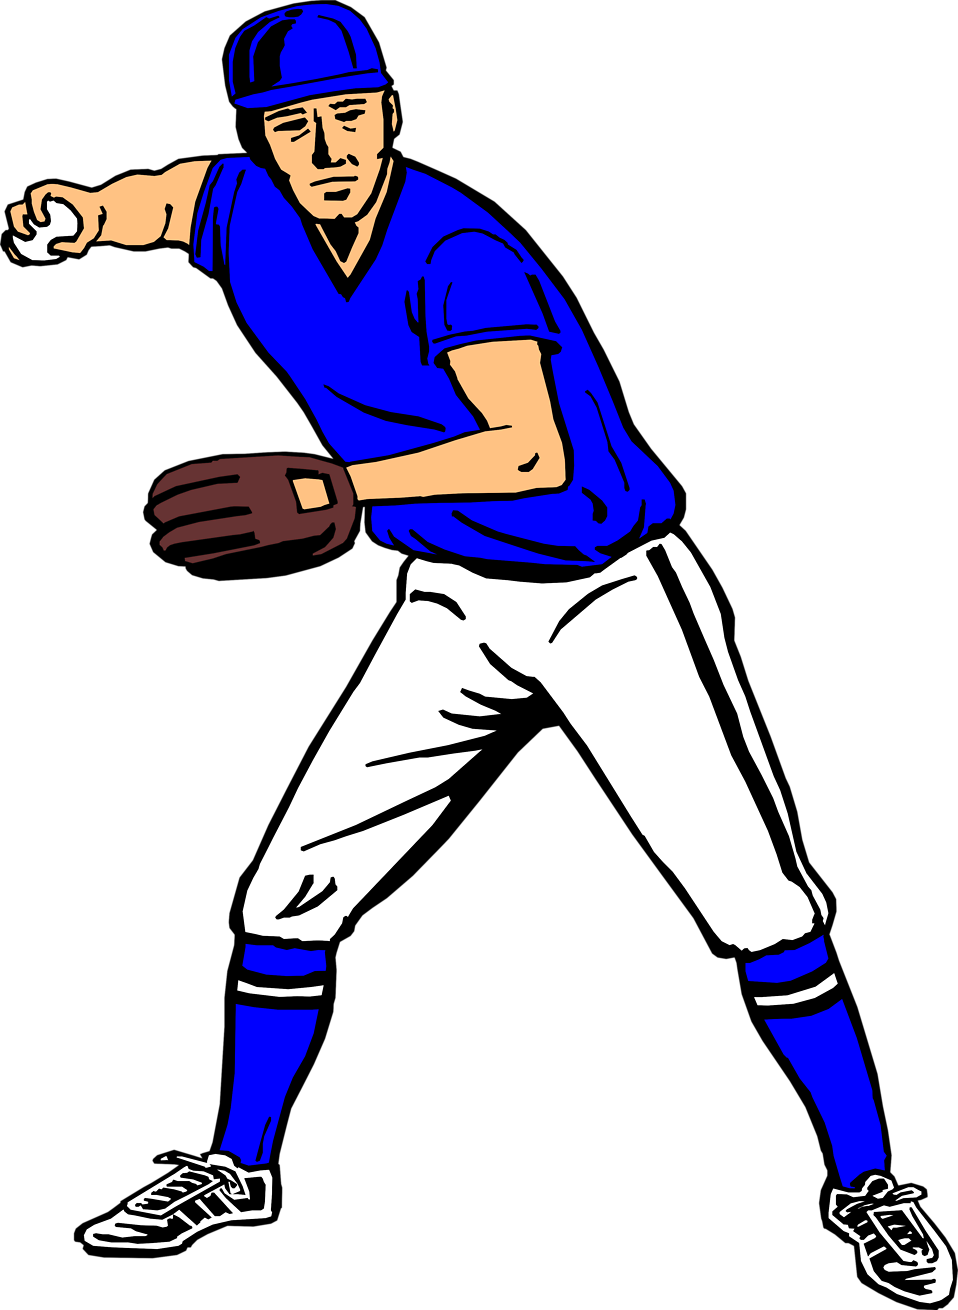 Baseball player throwing a ball clipart graphic royalty free stock Baseball | Free Stock Photo | Illustration of a baseball player ... graphic royalty free stock